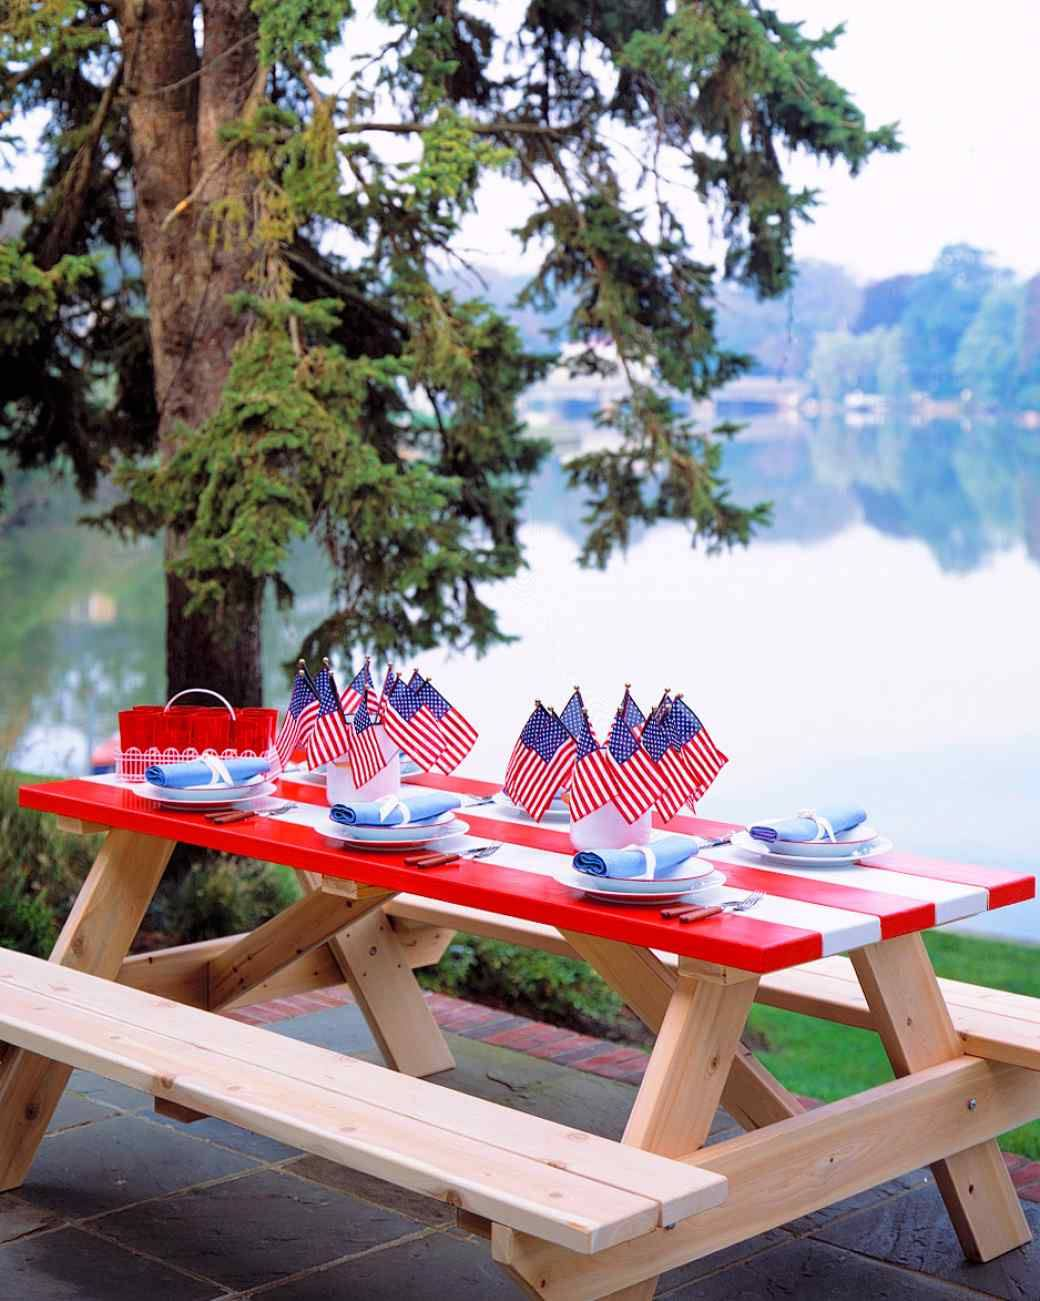 http://www.marthastewart.com/1072683/patriotic-party-ideas-and-decorations-memorial-day#224328 Hope everyone is celebrating this weekend! Enjoy your home, relax, and spend time with your family and remeber all of the men and women who made countless sac